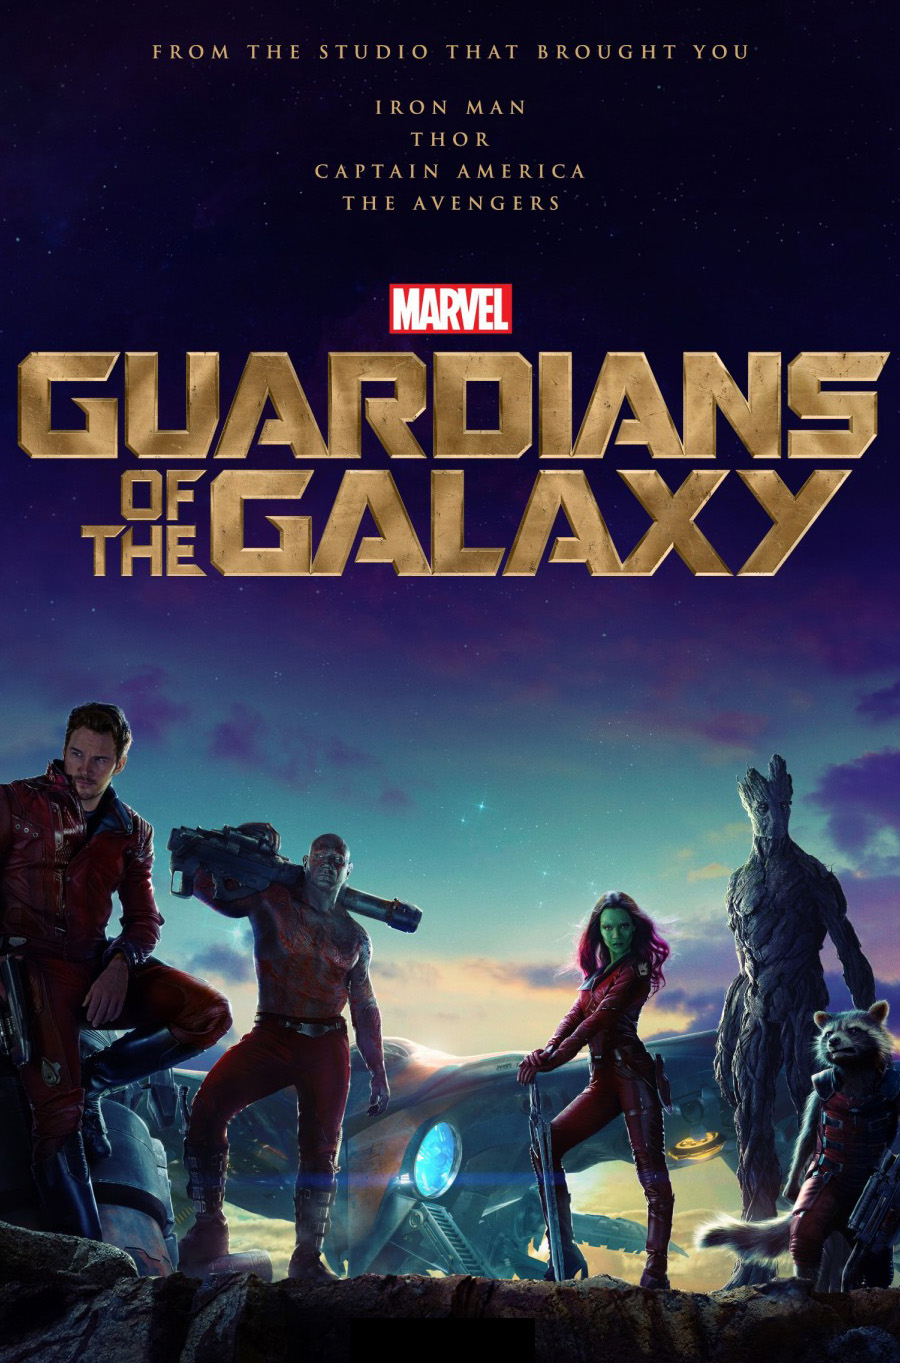 Amp Summer Movies Series: Guardians of the Galaxy